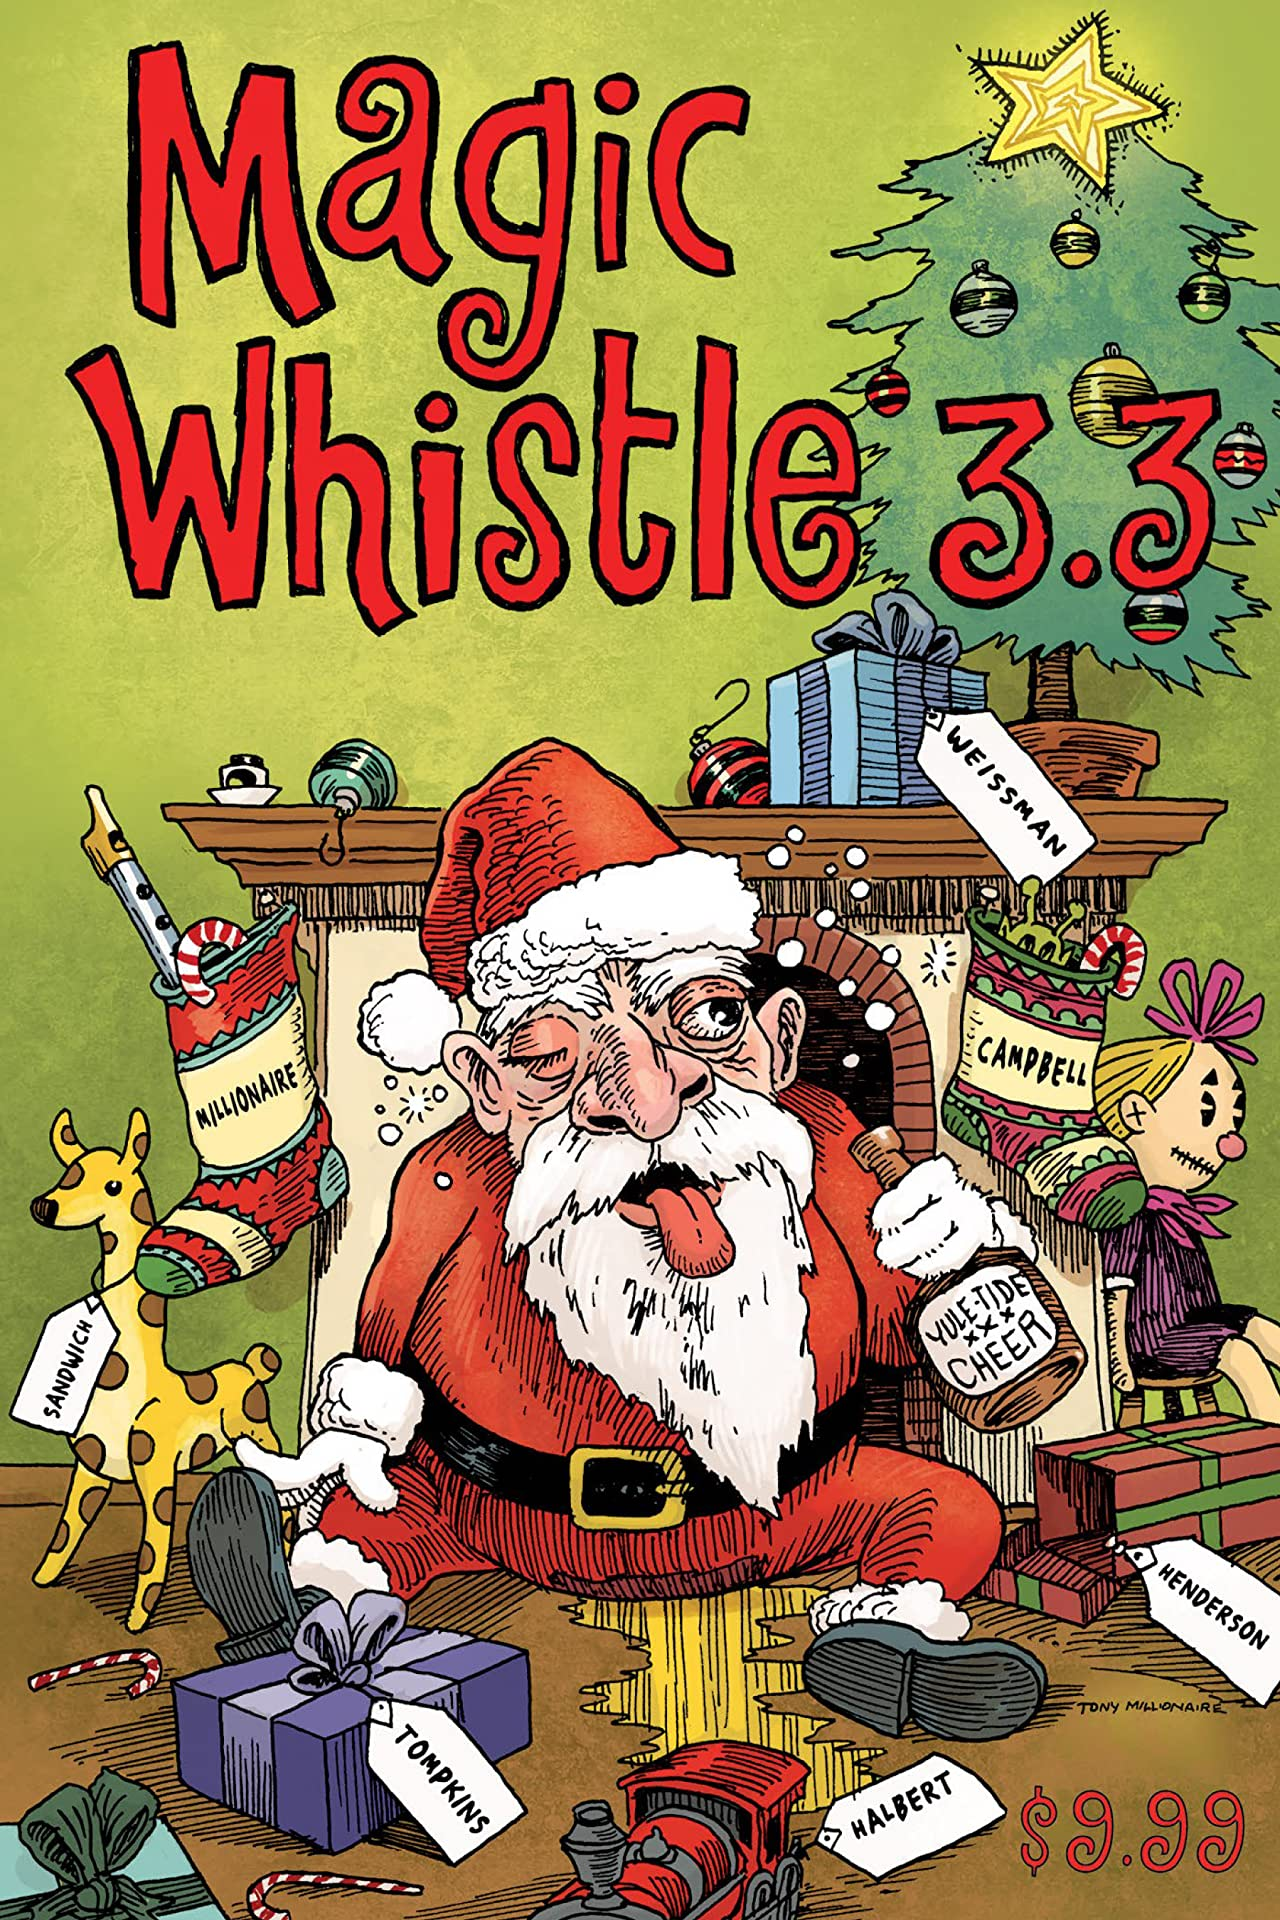 Magic Whistle No.303